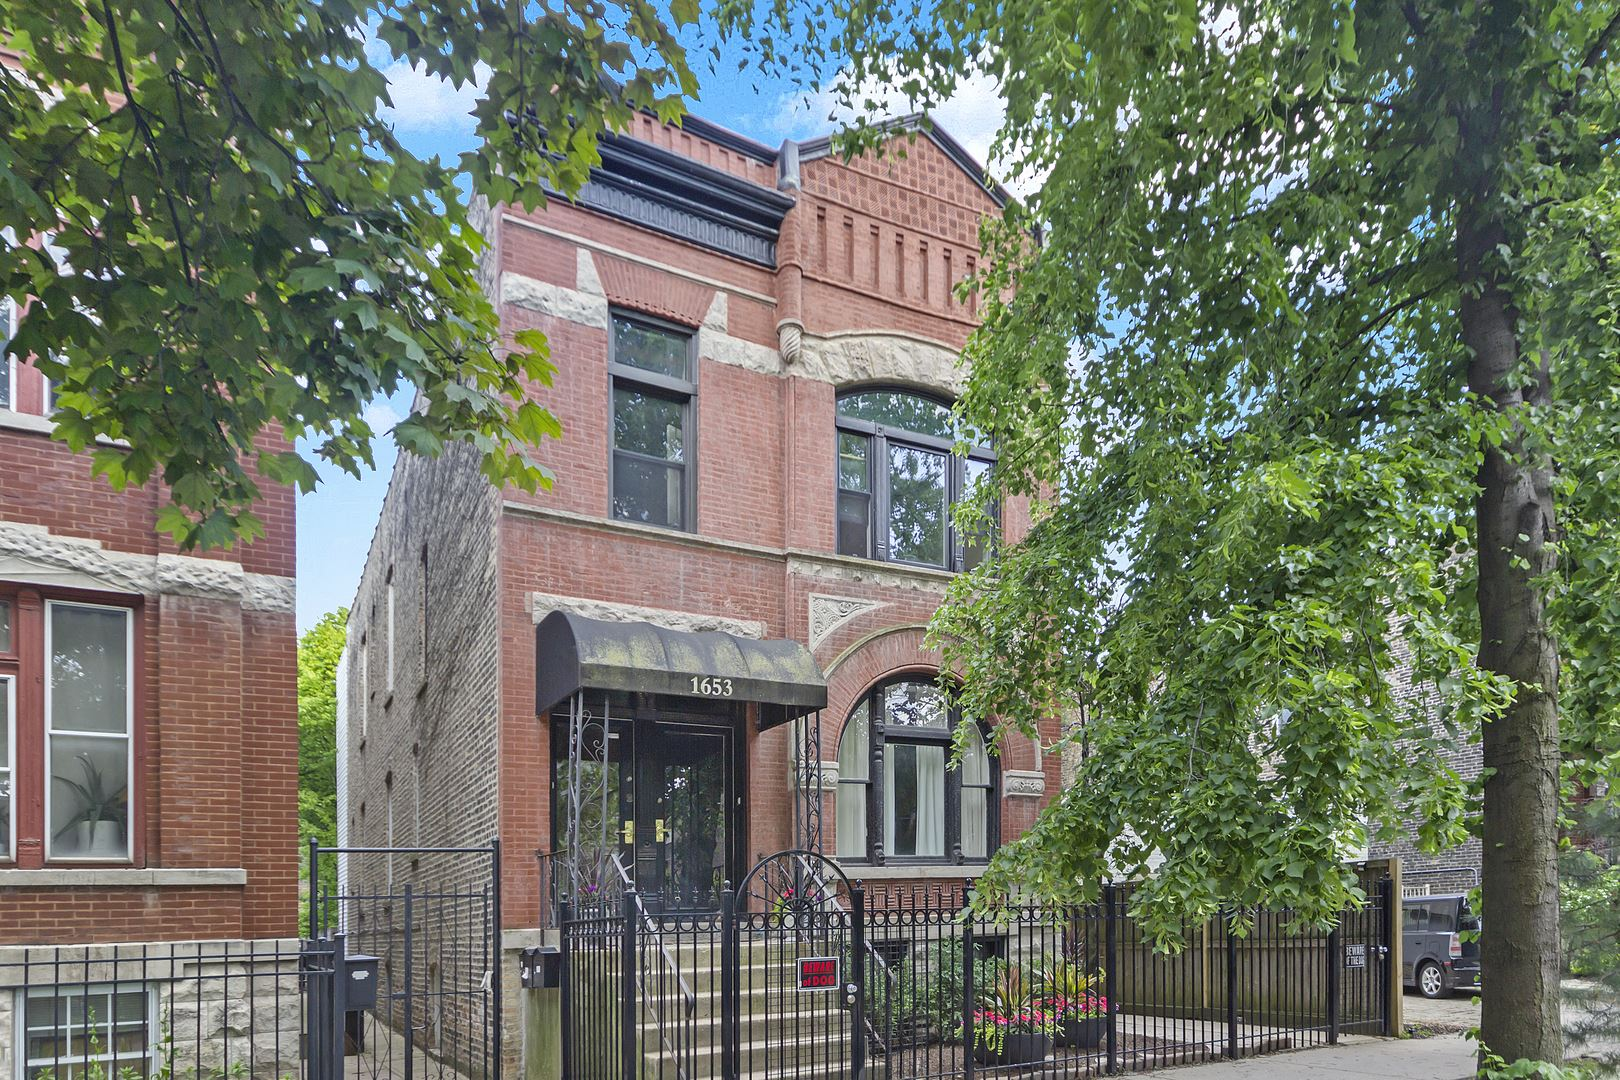 1653 N BELL Avenue, Chicago, IL 60647 - #: 10749256